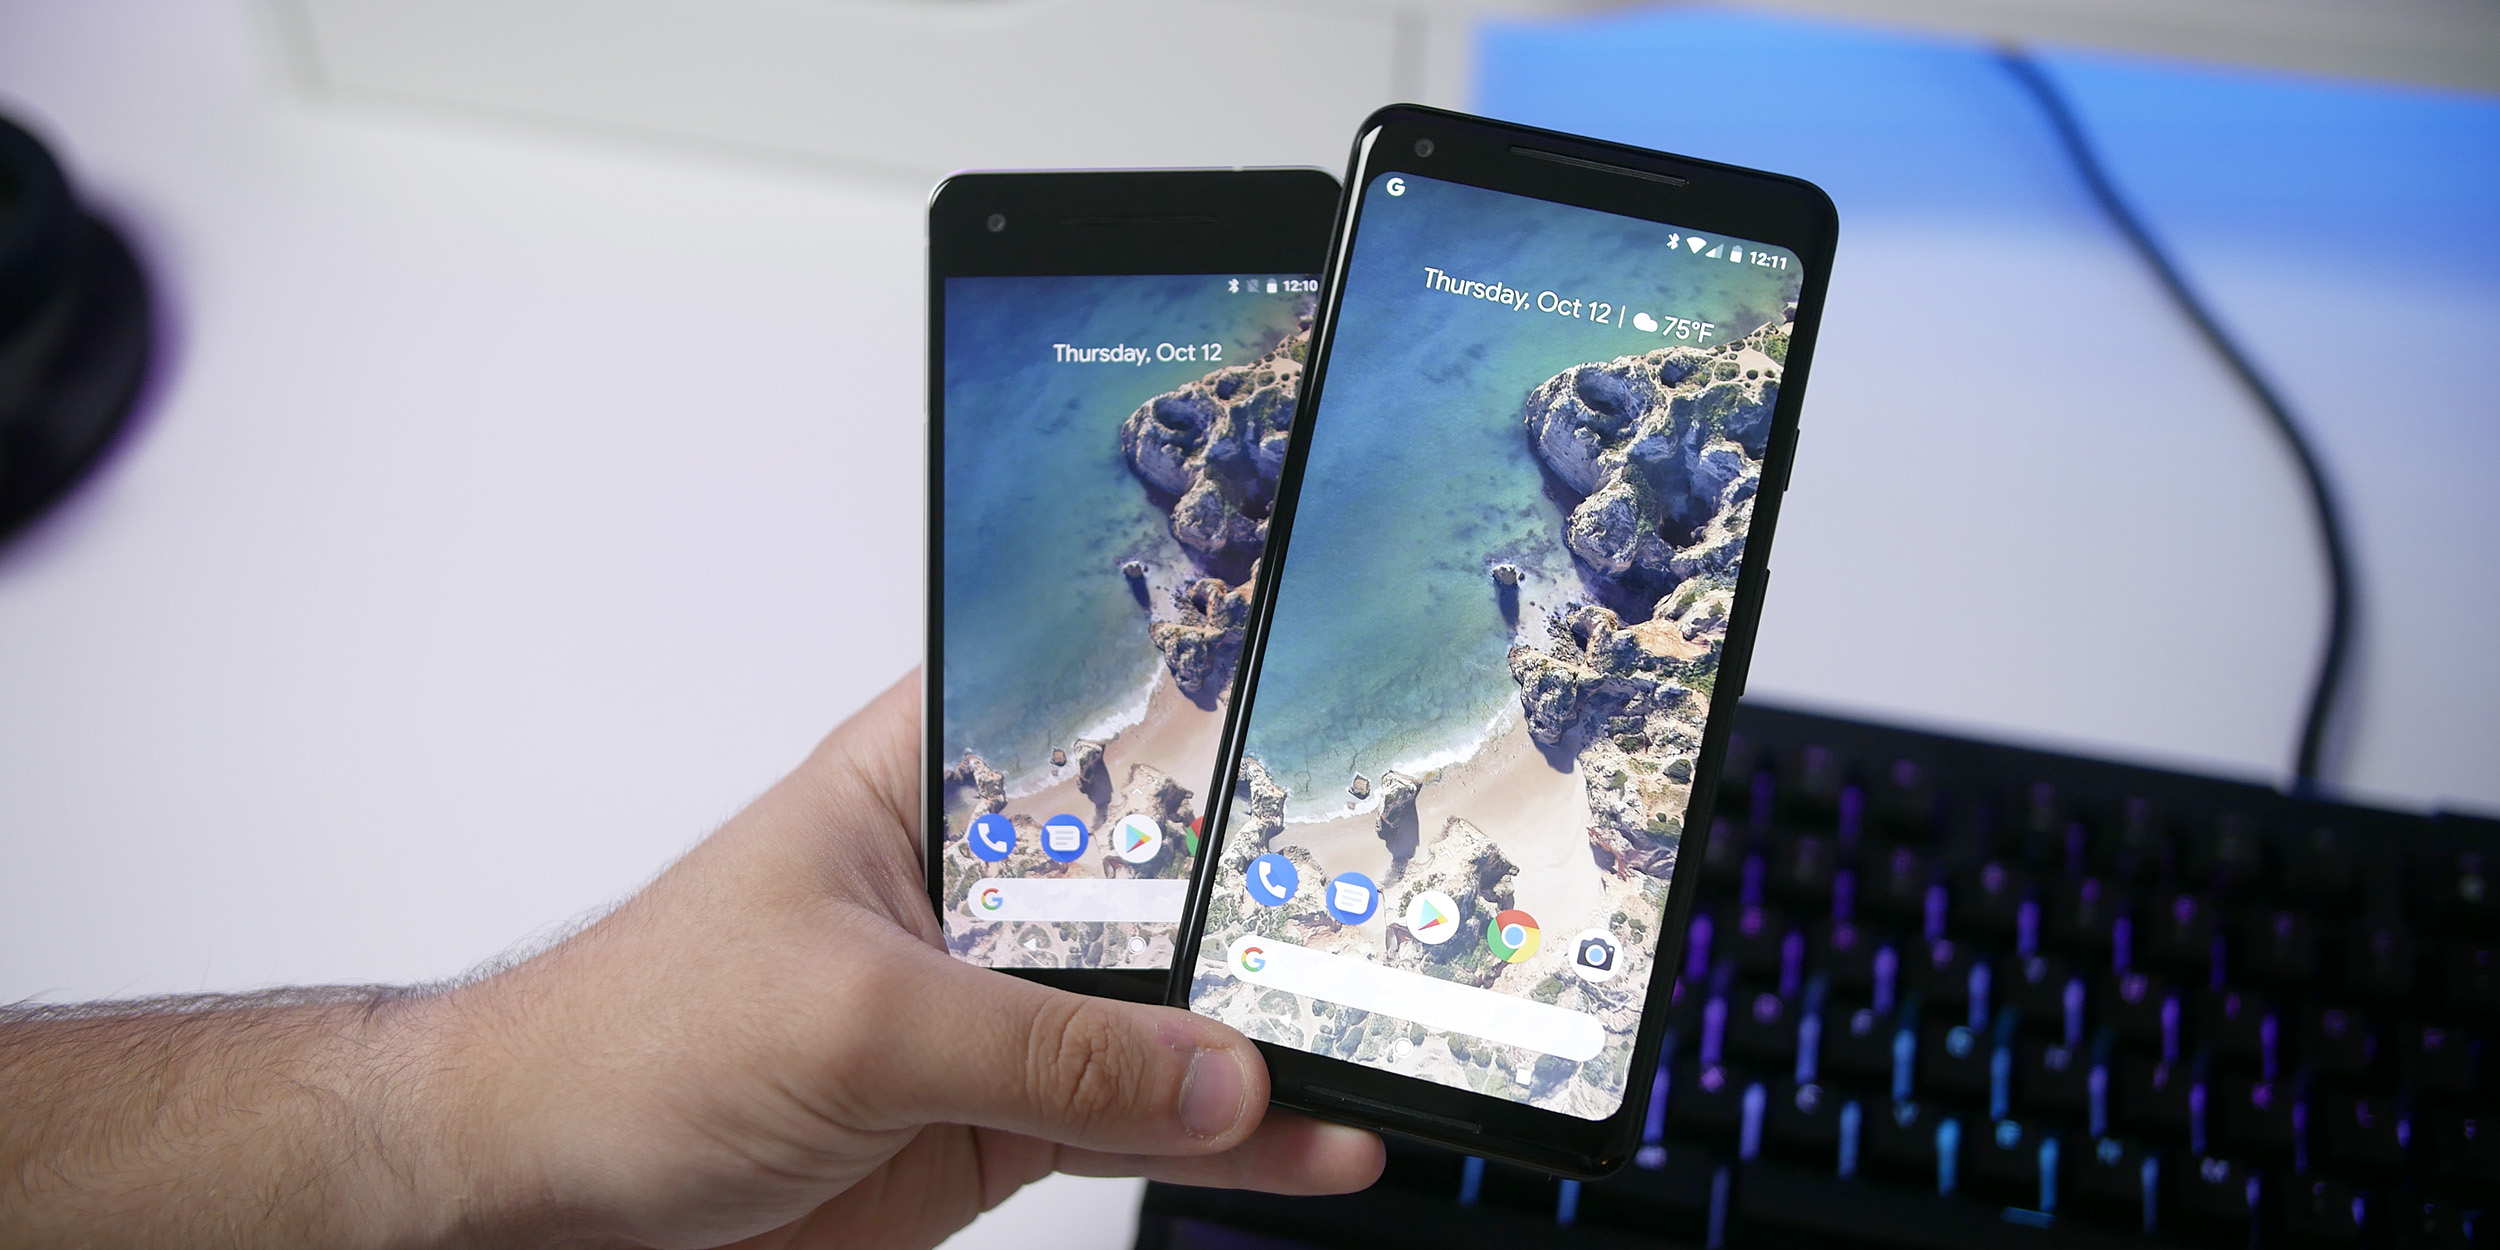 Best Android Phones you can buy – Pixel, Samsung, more - 9to5Google